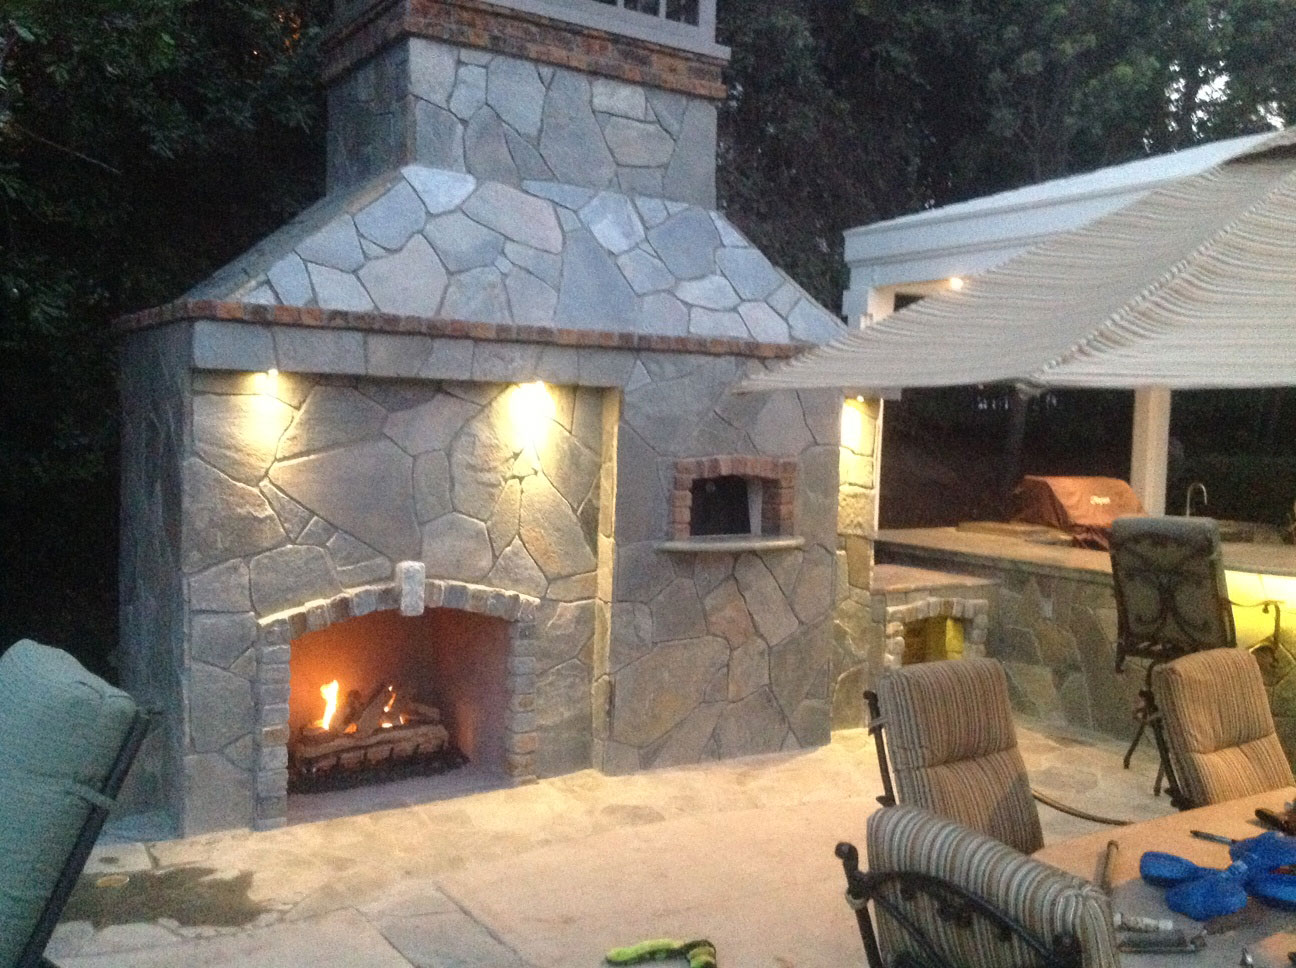 This Forno Rustico 100 Pizza Oven Was Installed In San Juan Capistrano, Ca  By Italco Construction Inc. Italco Construction Provides Custom Outdoor  Pizza ...  Outdoor Fireplace And Pizza Oven